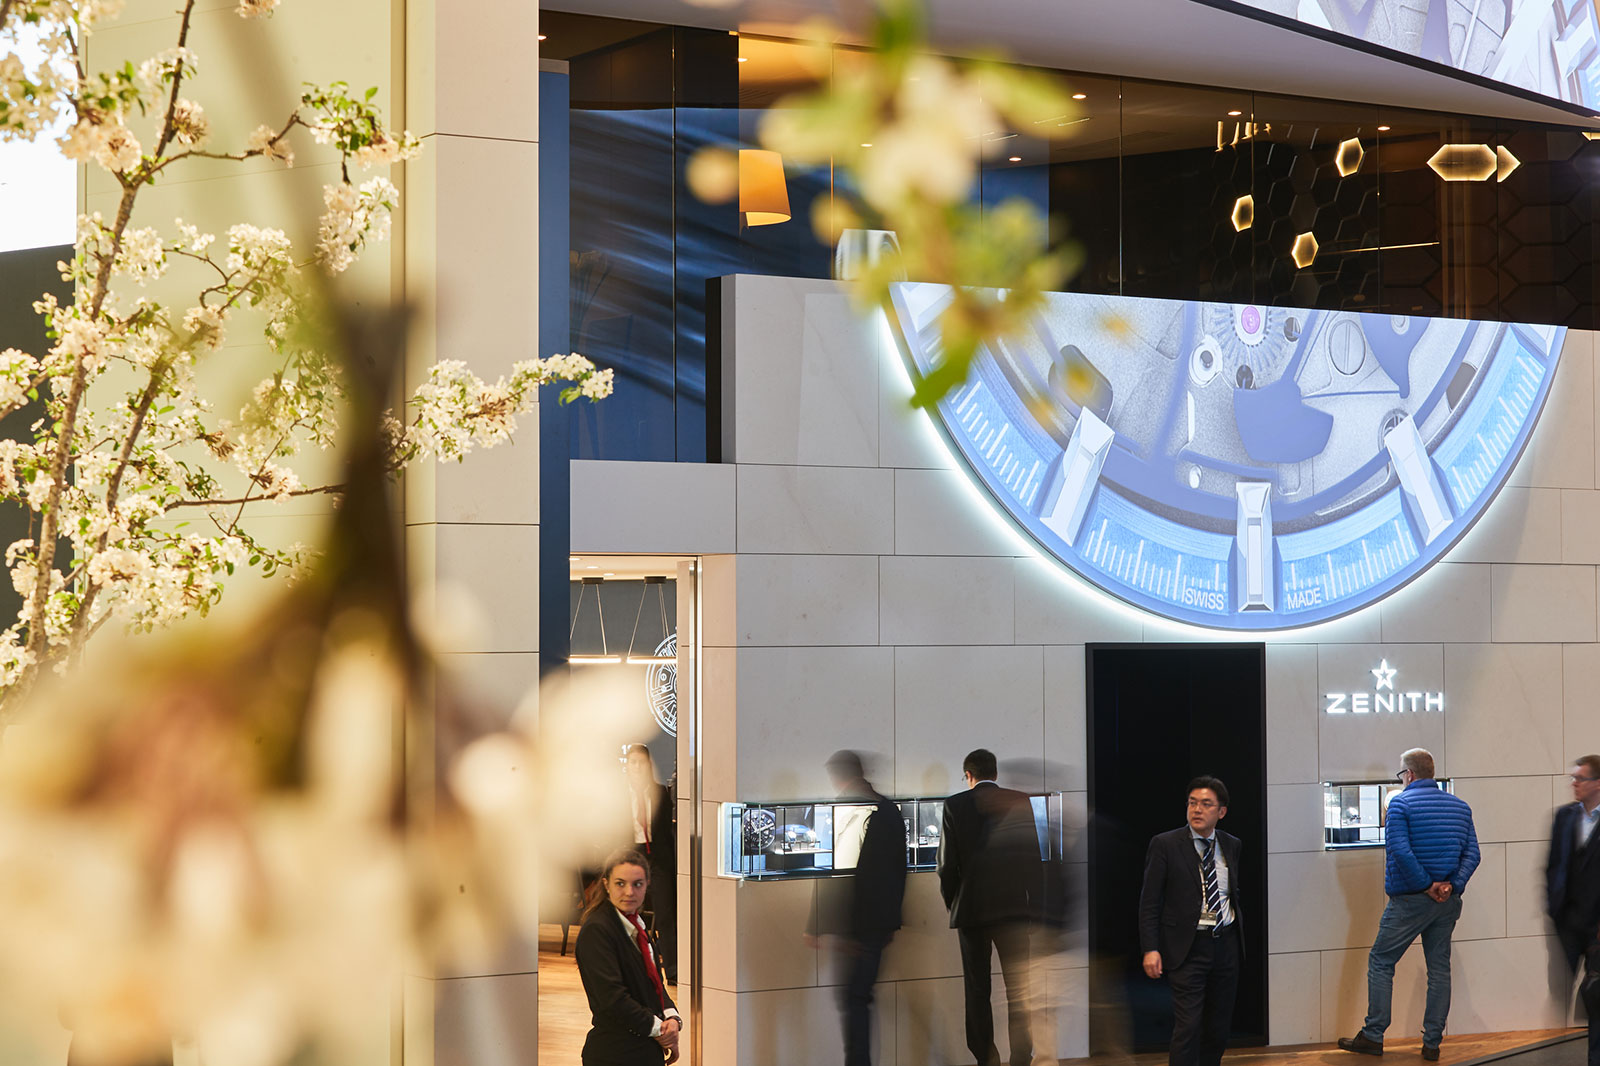 baselworld 2020 Zenith booth